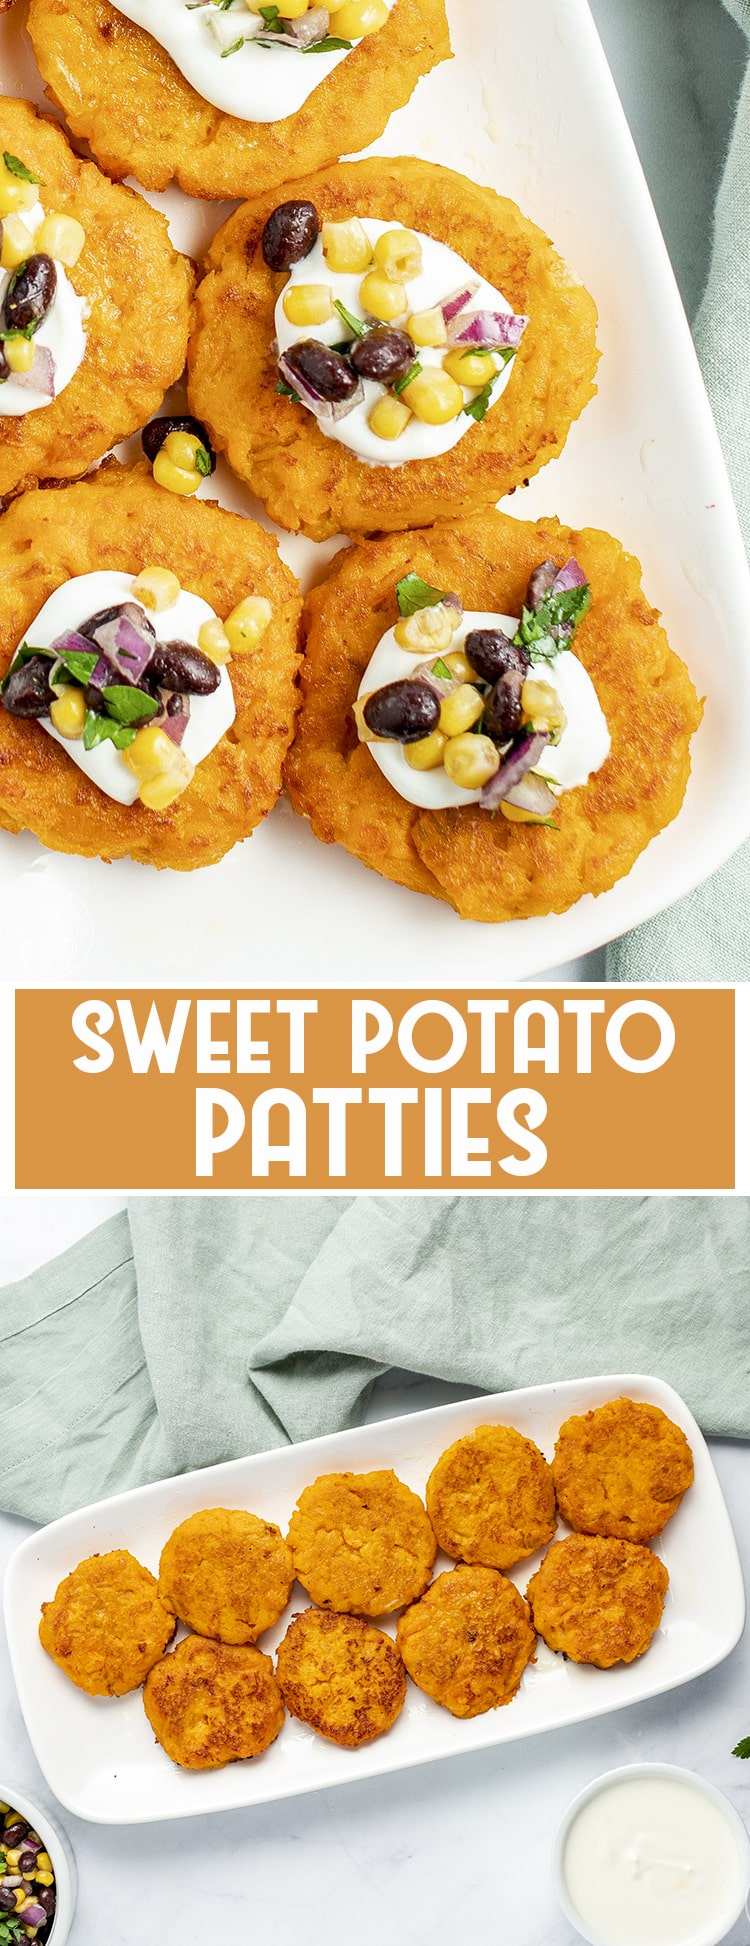 These sweet potato patties are mashed into crispy flavorful patties, that are perfect for a vegetarian meal or side dish.